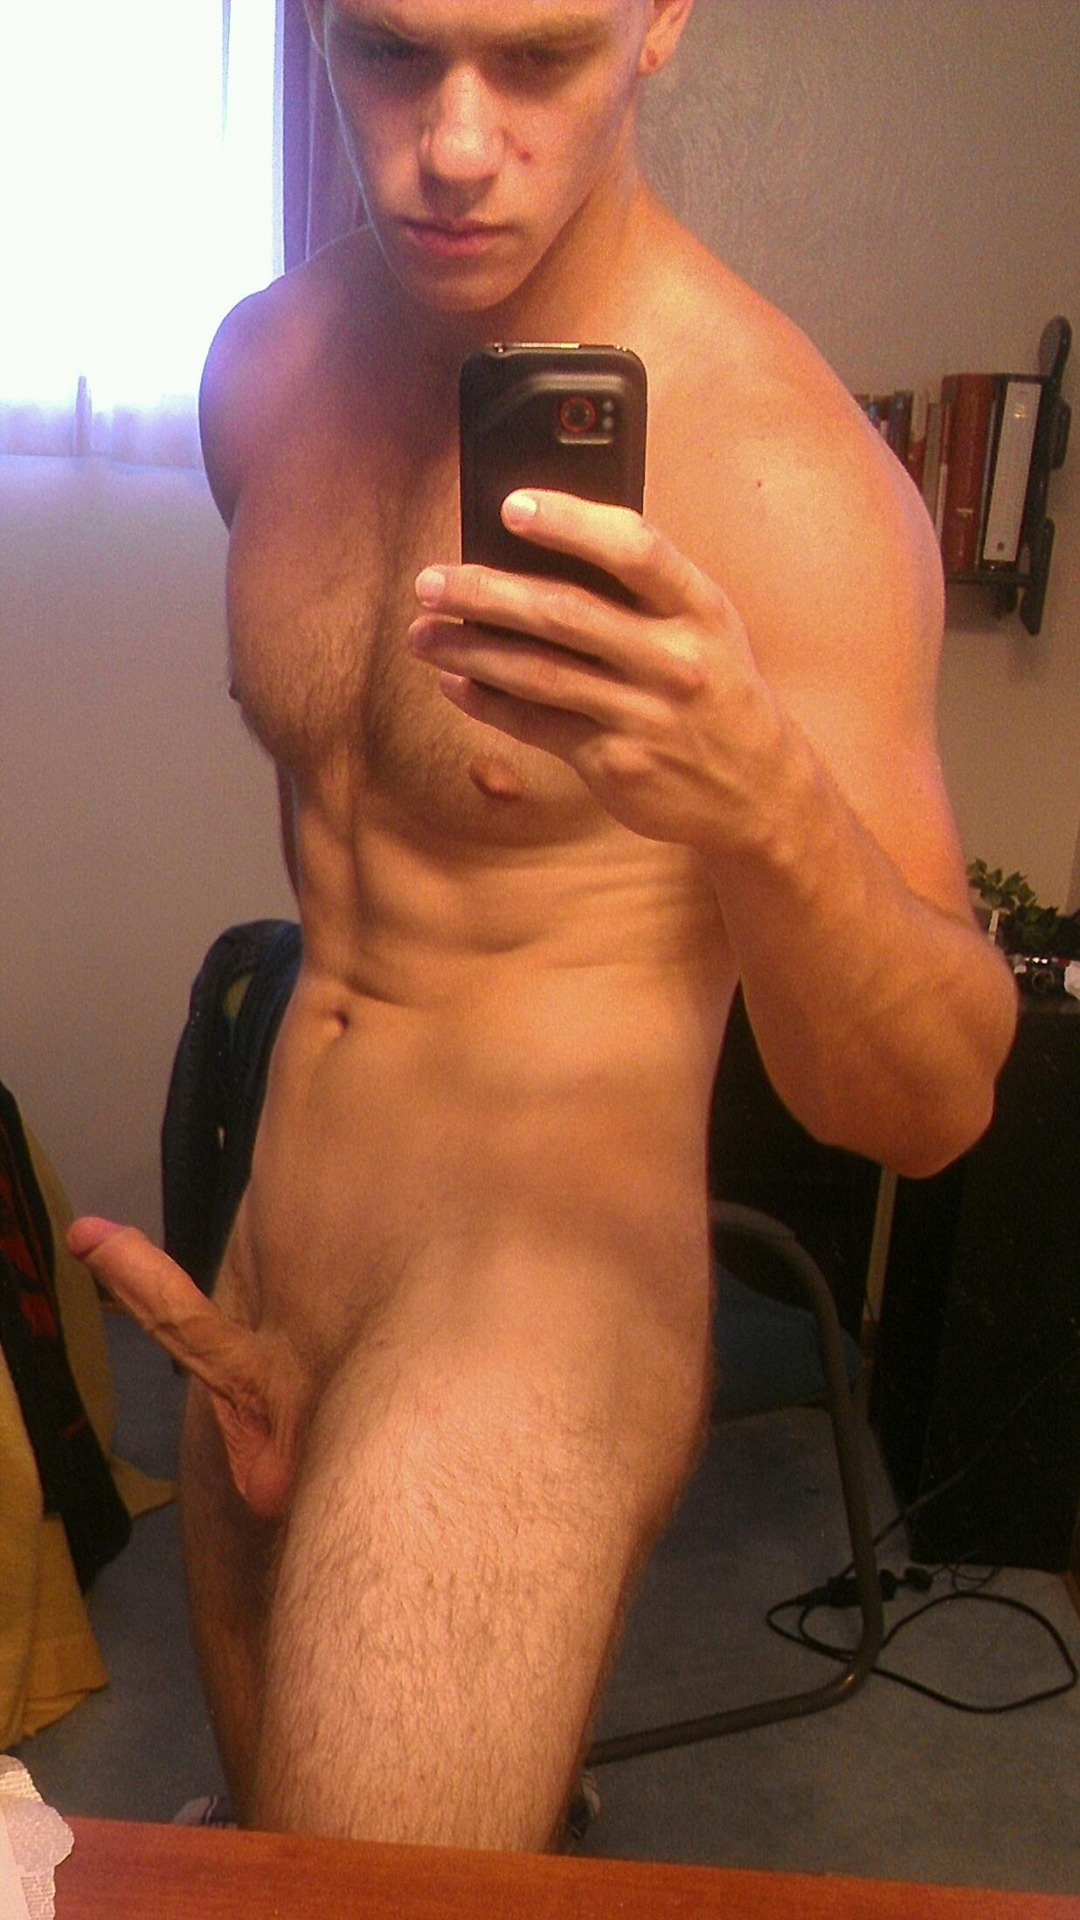 Muscular Hottie With A Sexy Hairy Chest - Nude Amateur Guys